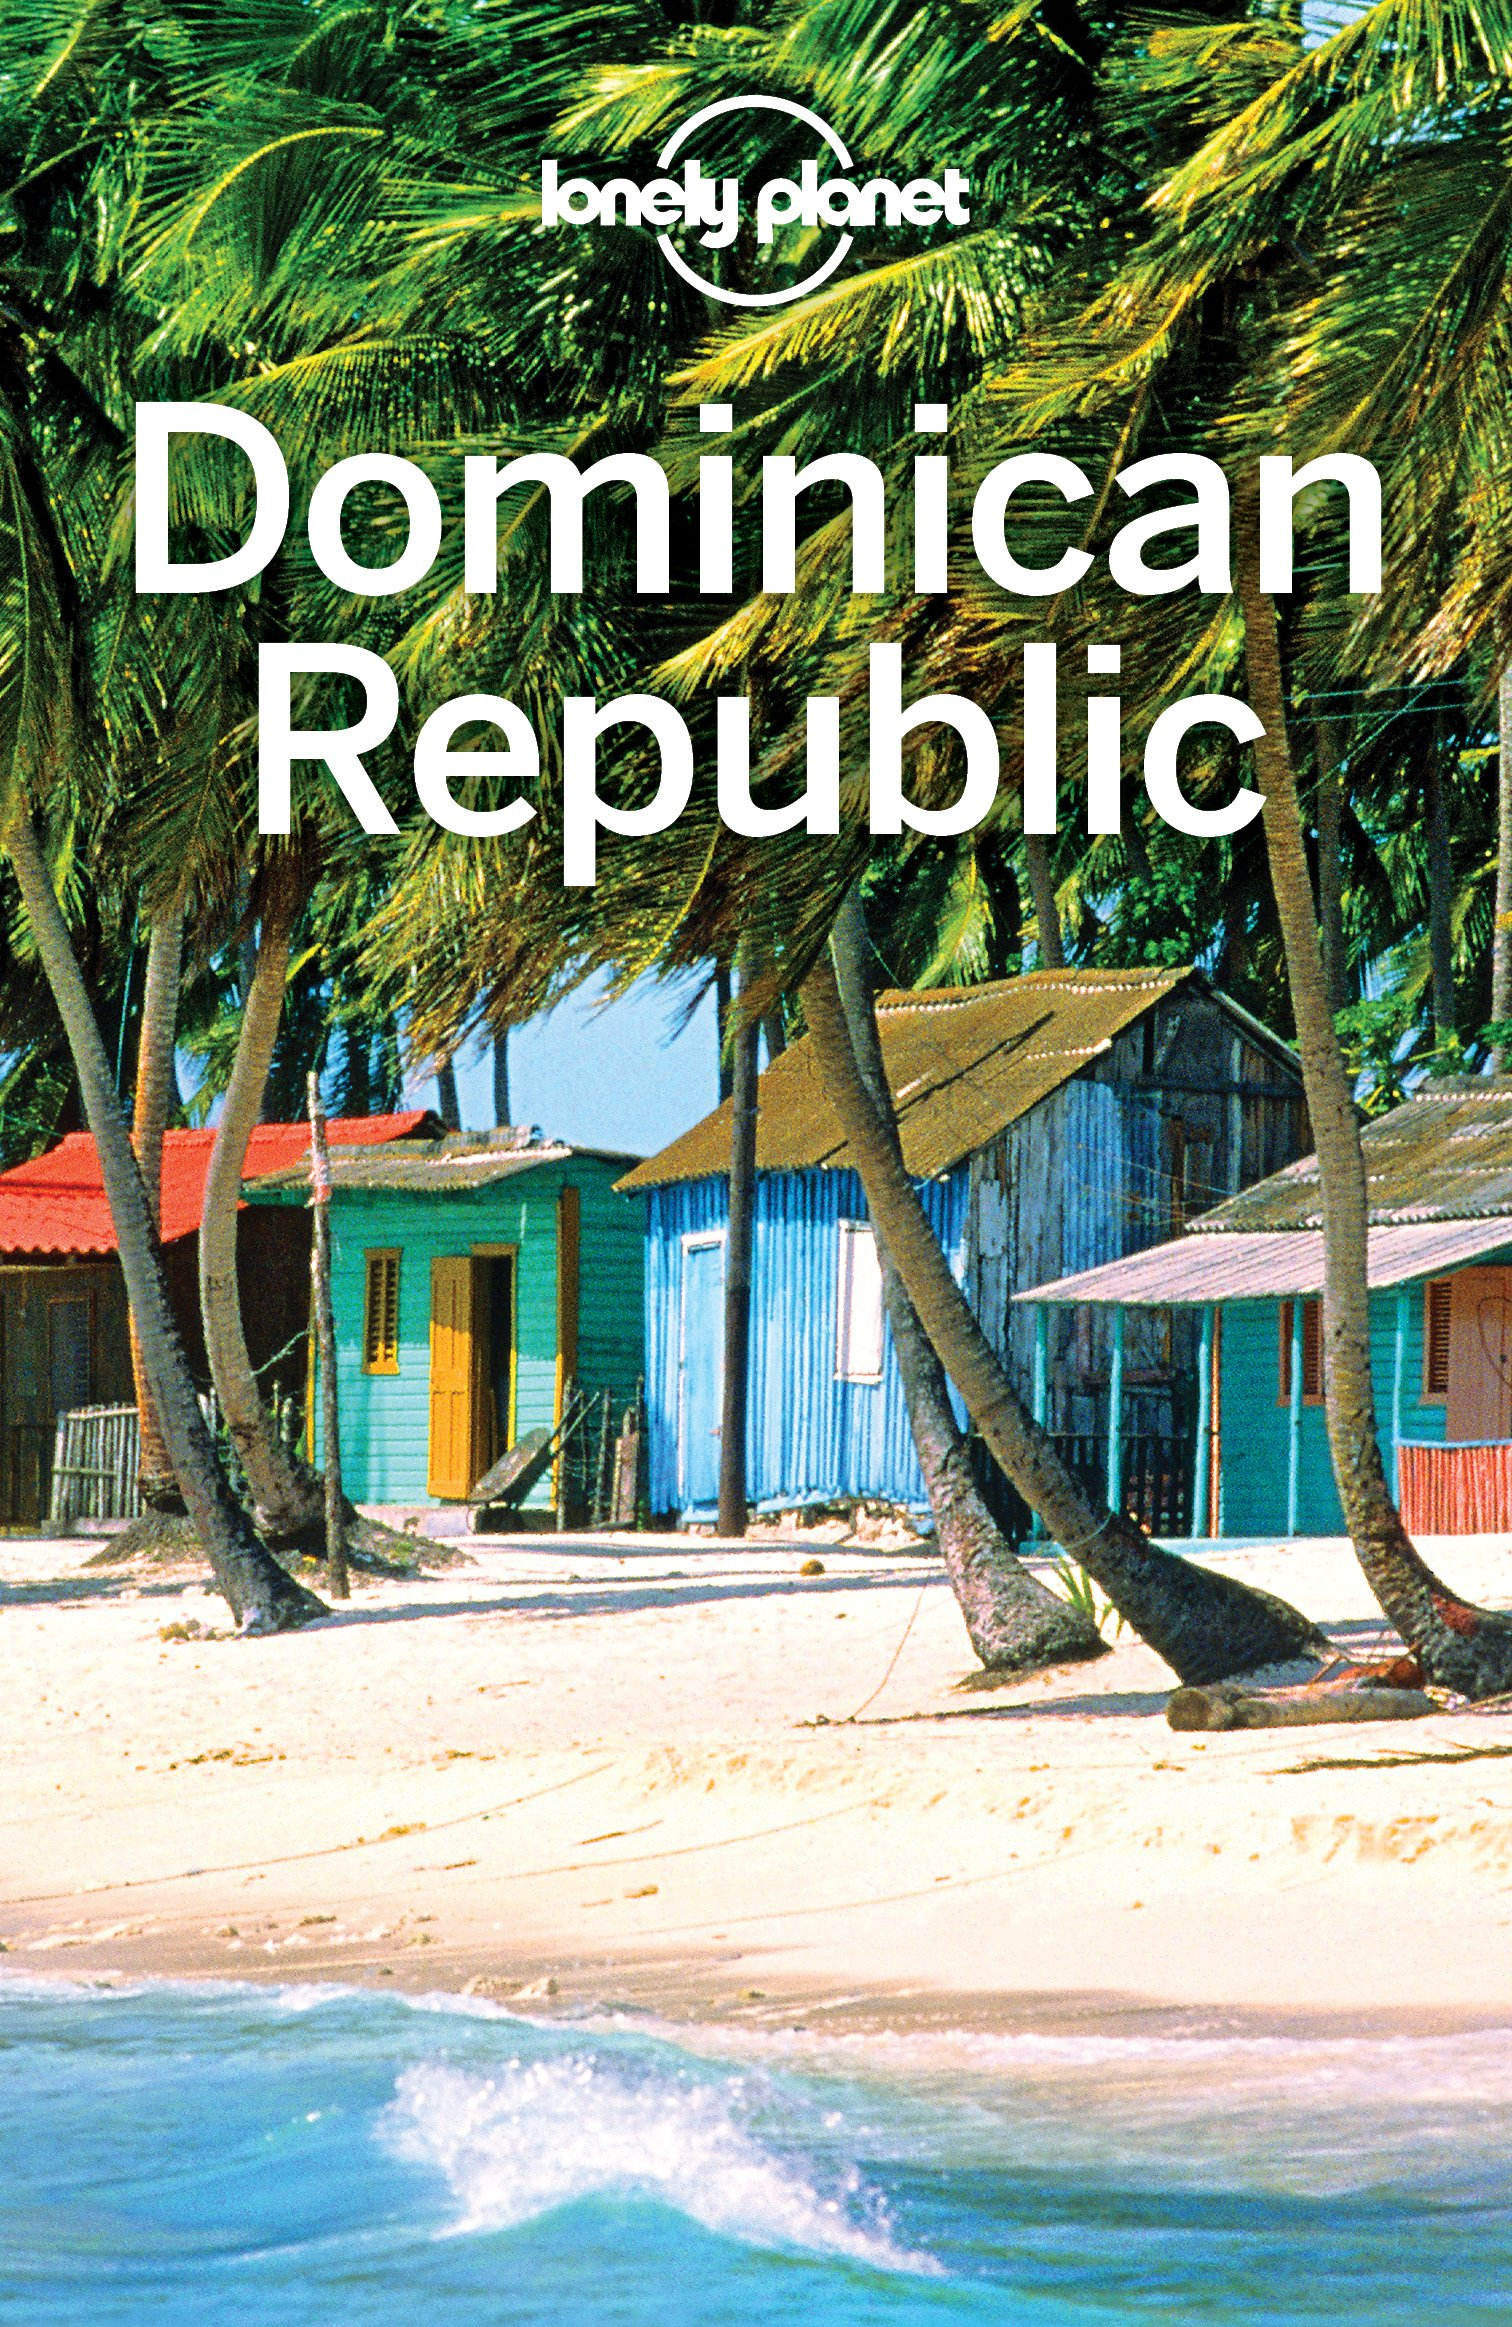 Lonely Planet Dominican Republic (Travel Guide) (English Edition)